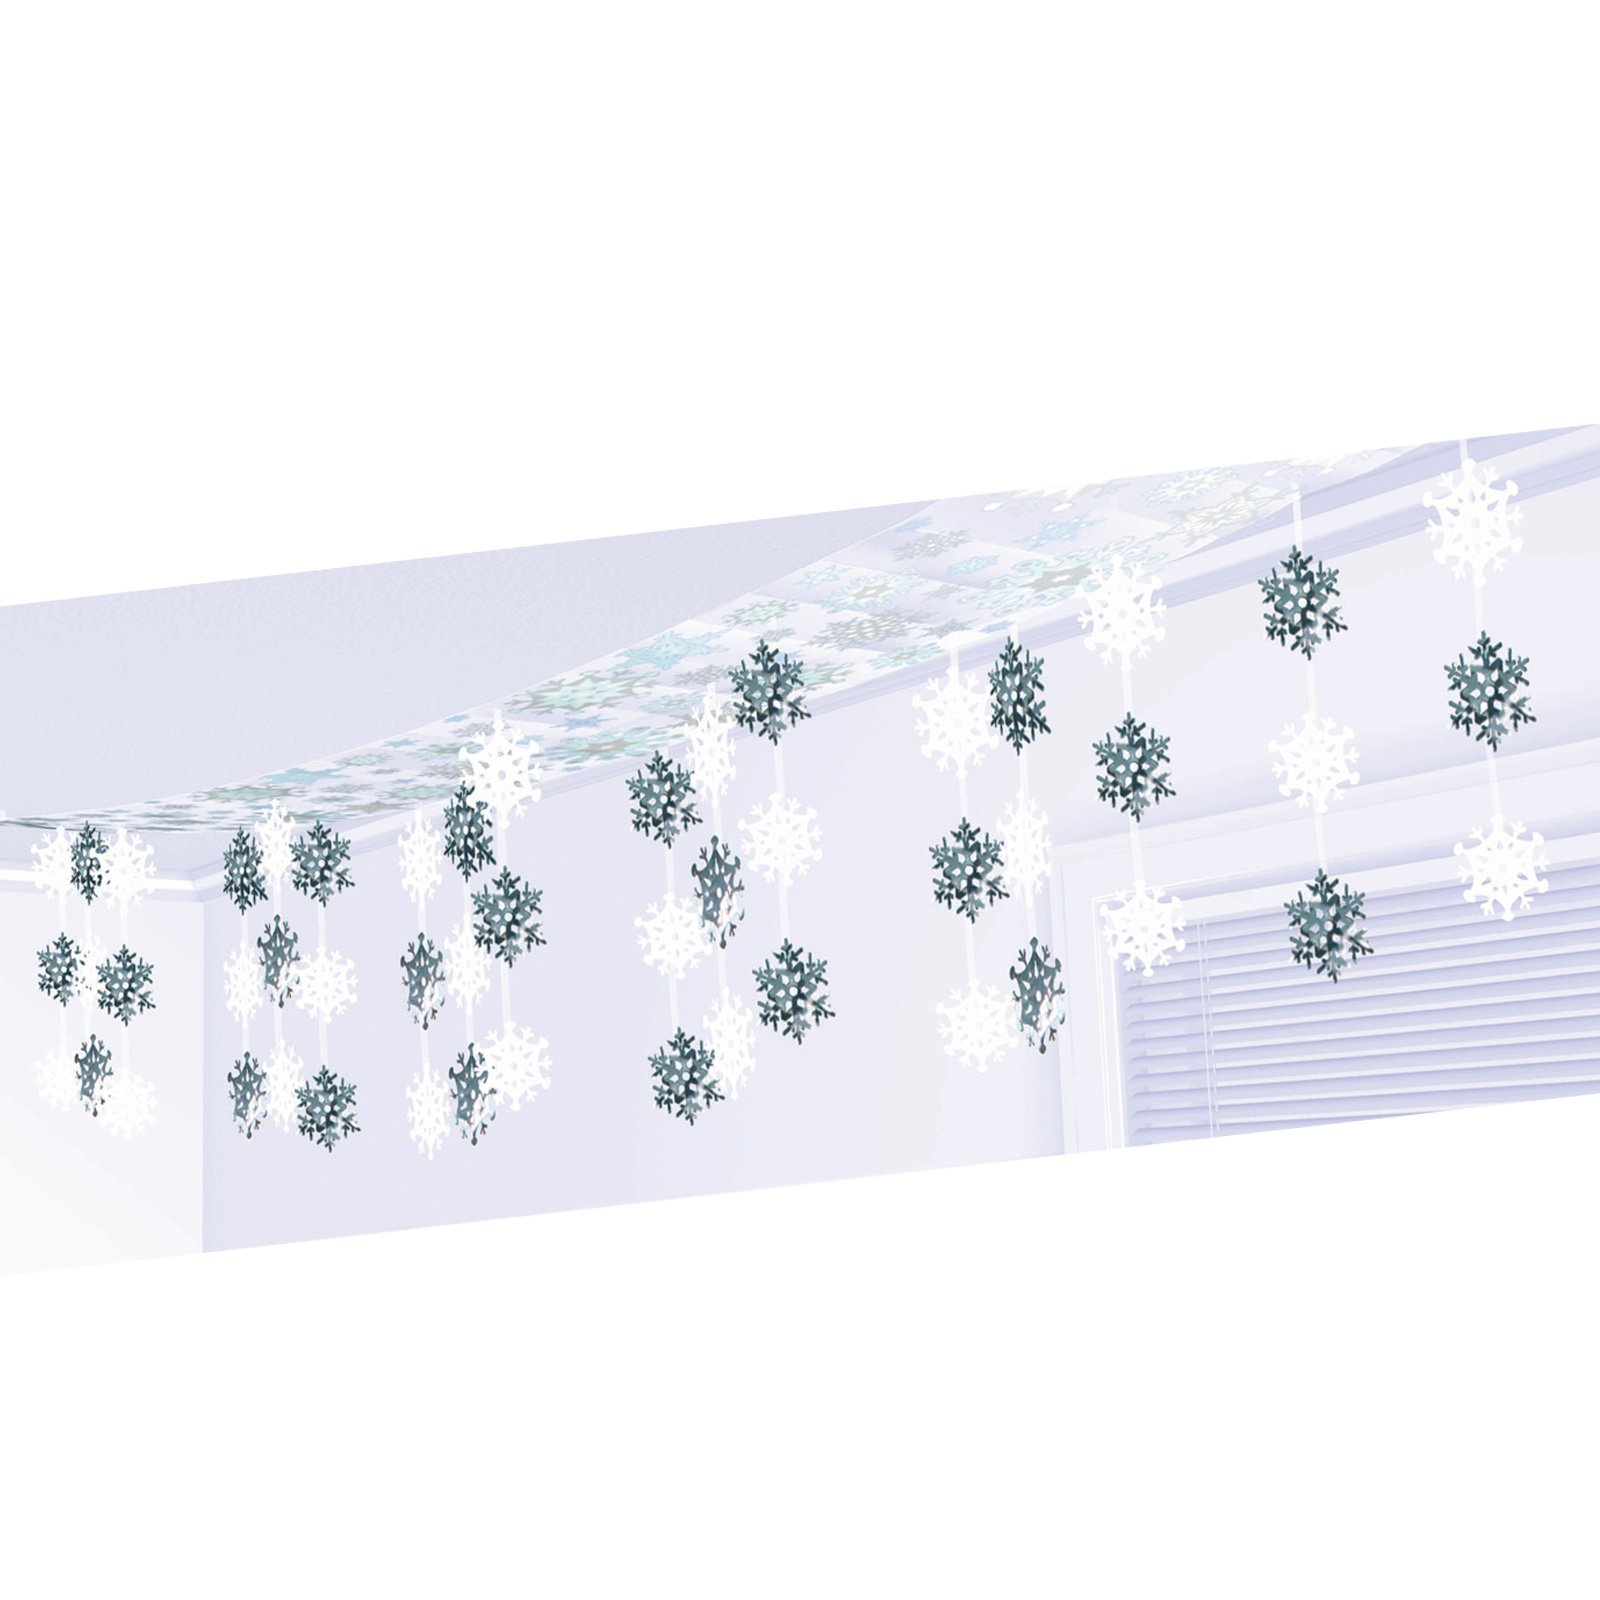 12' Let It Snow Foil Ceiling Decoration